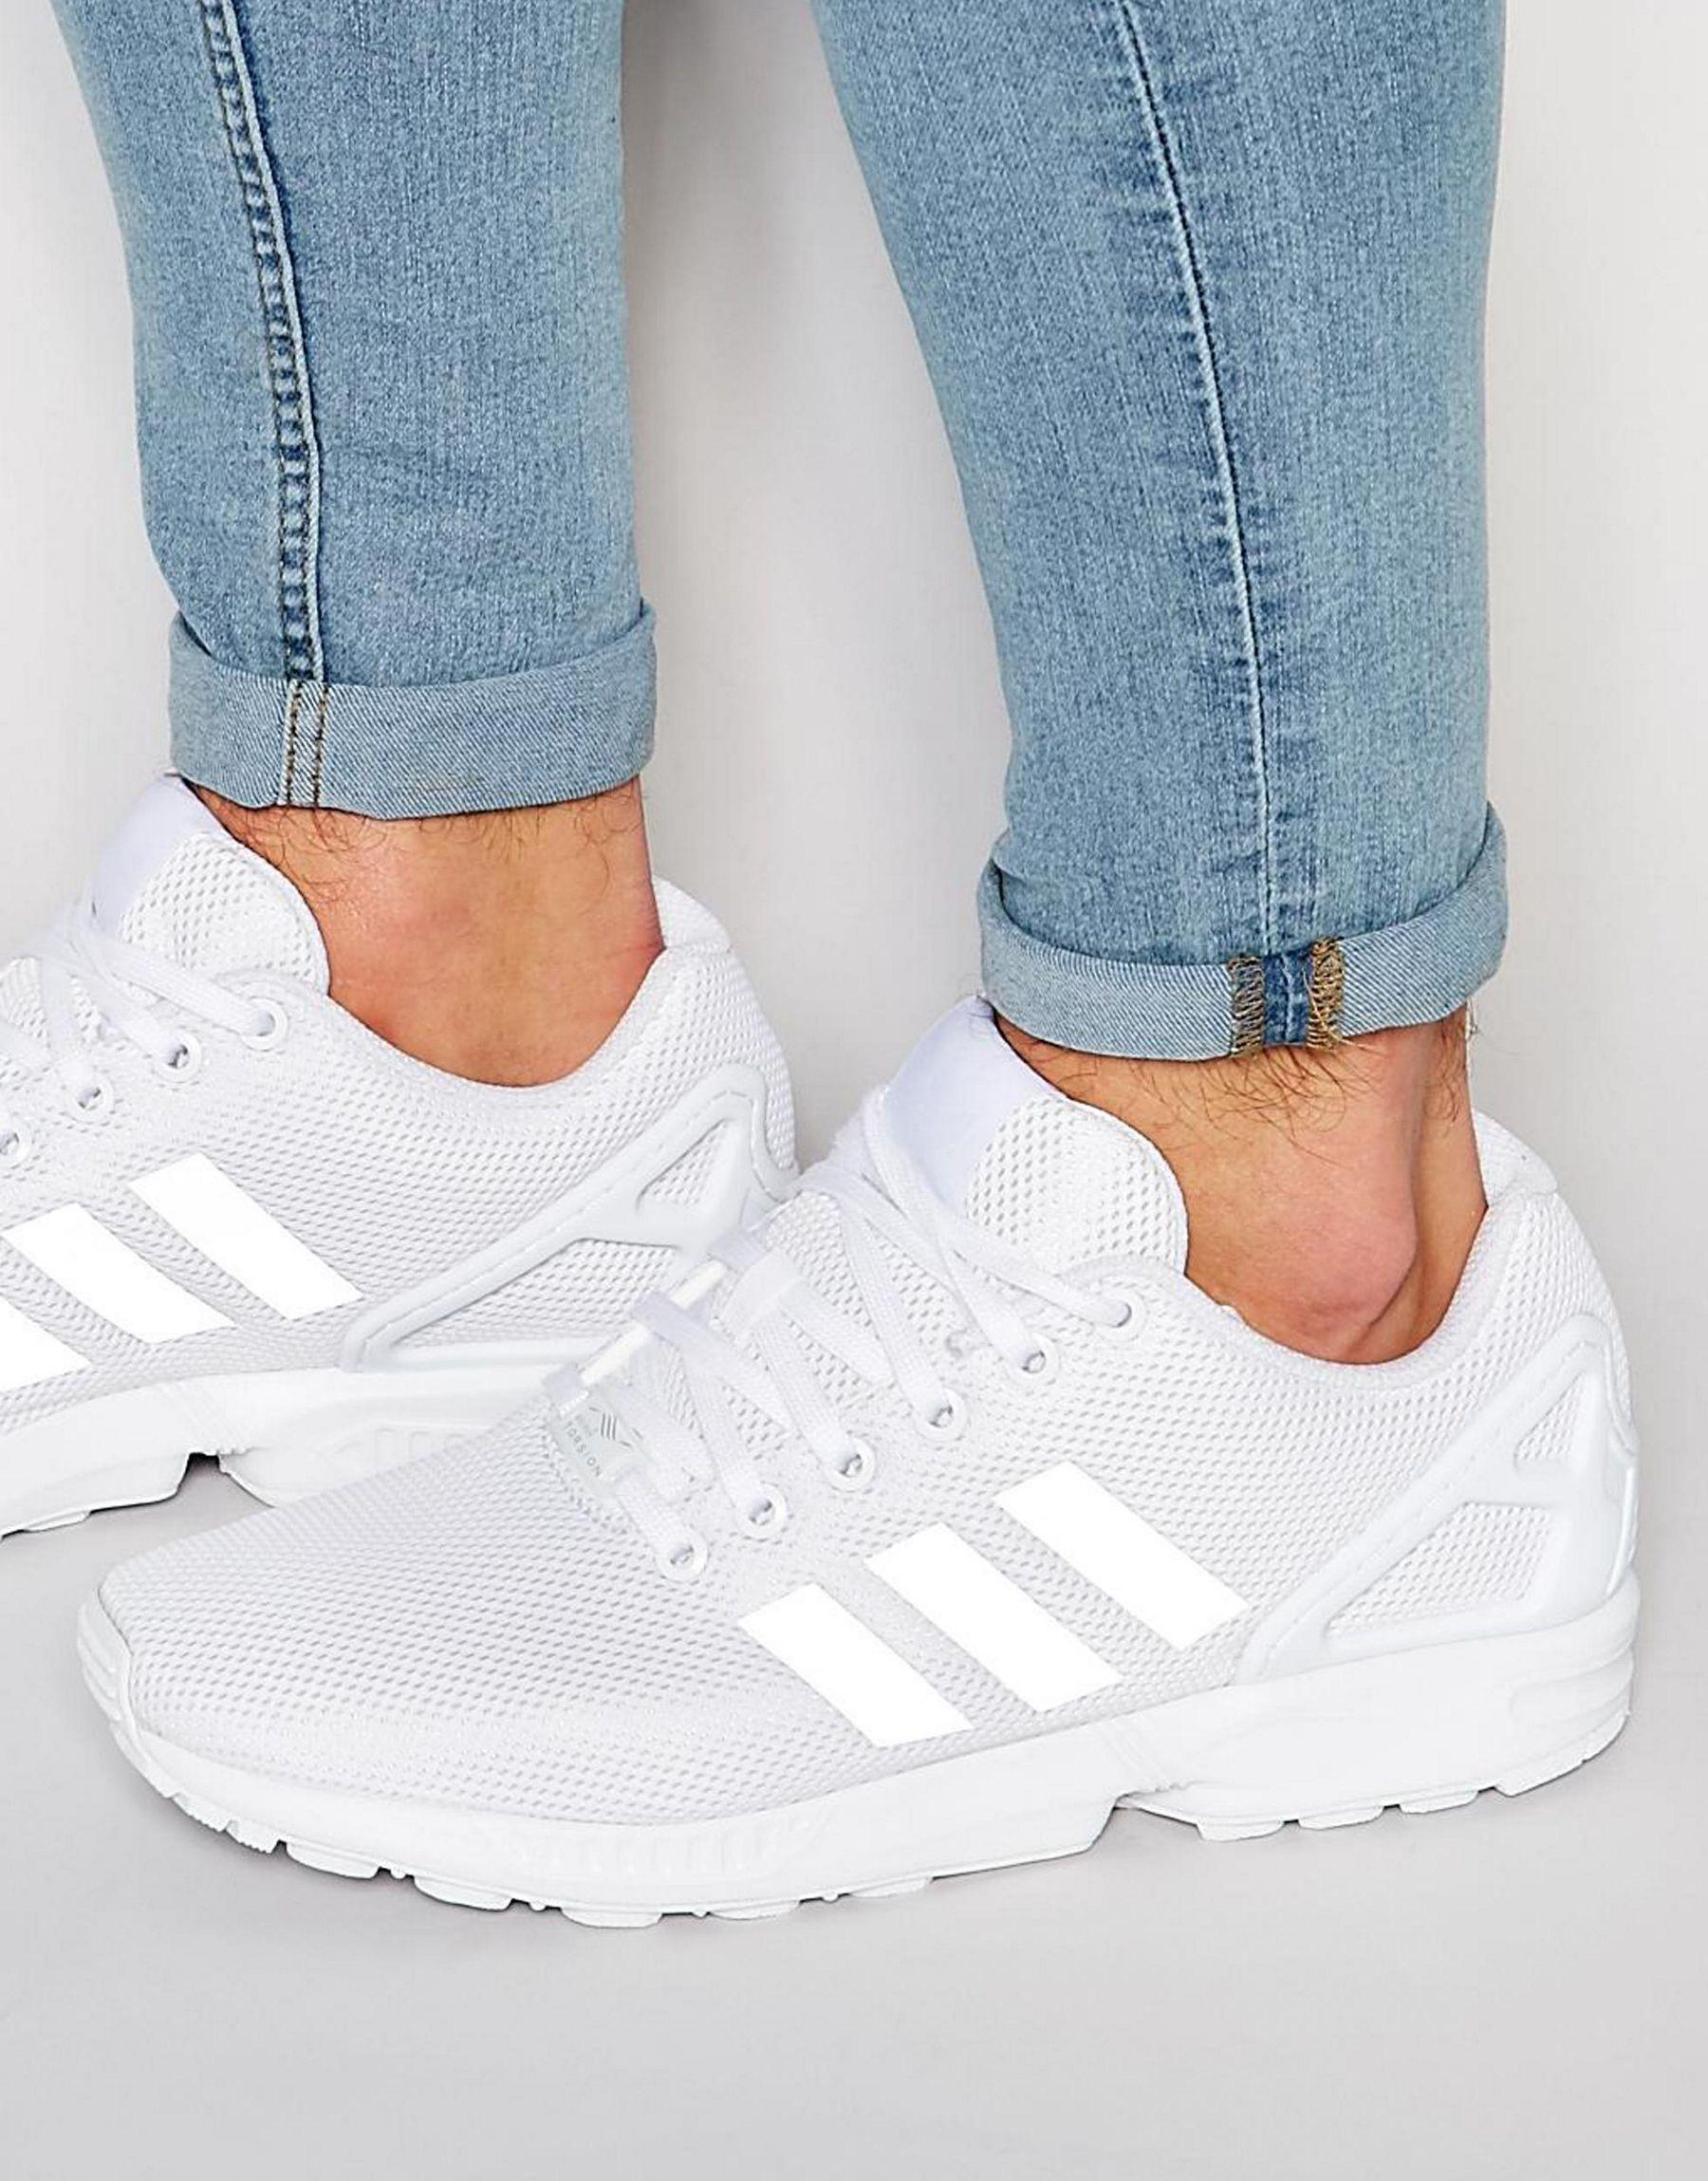 Zx Flux Trainers S79093